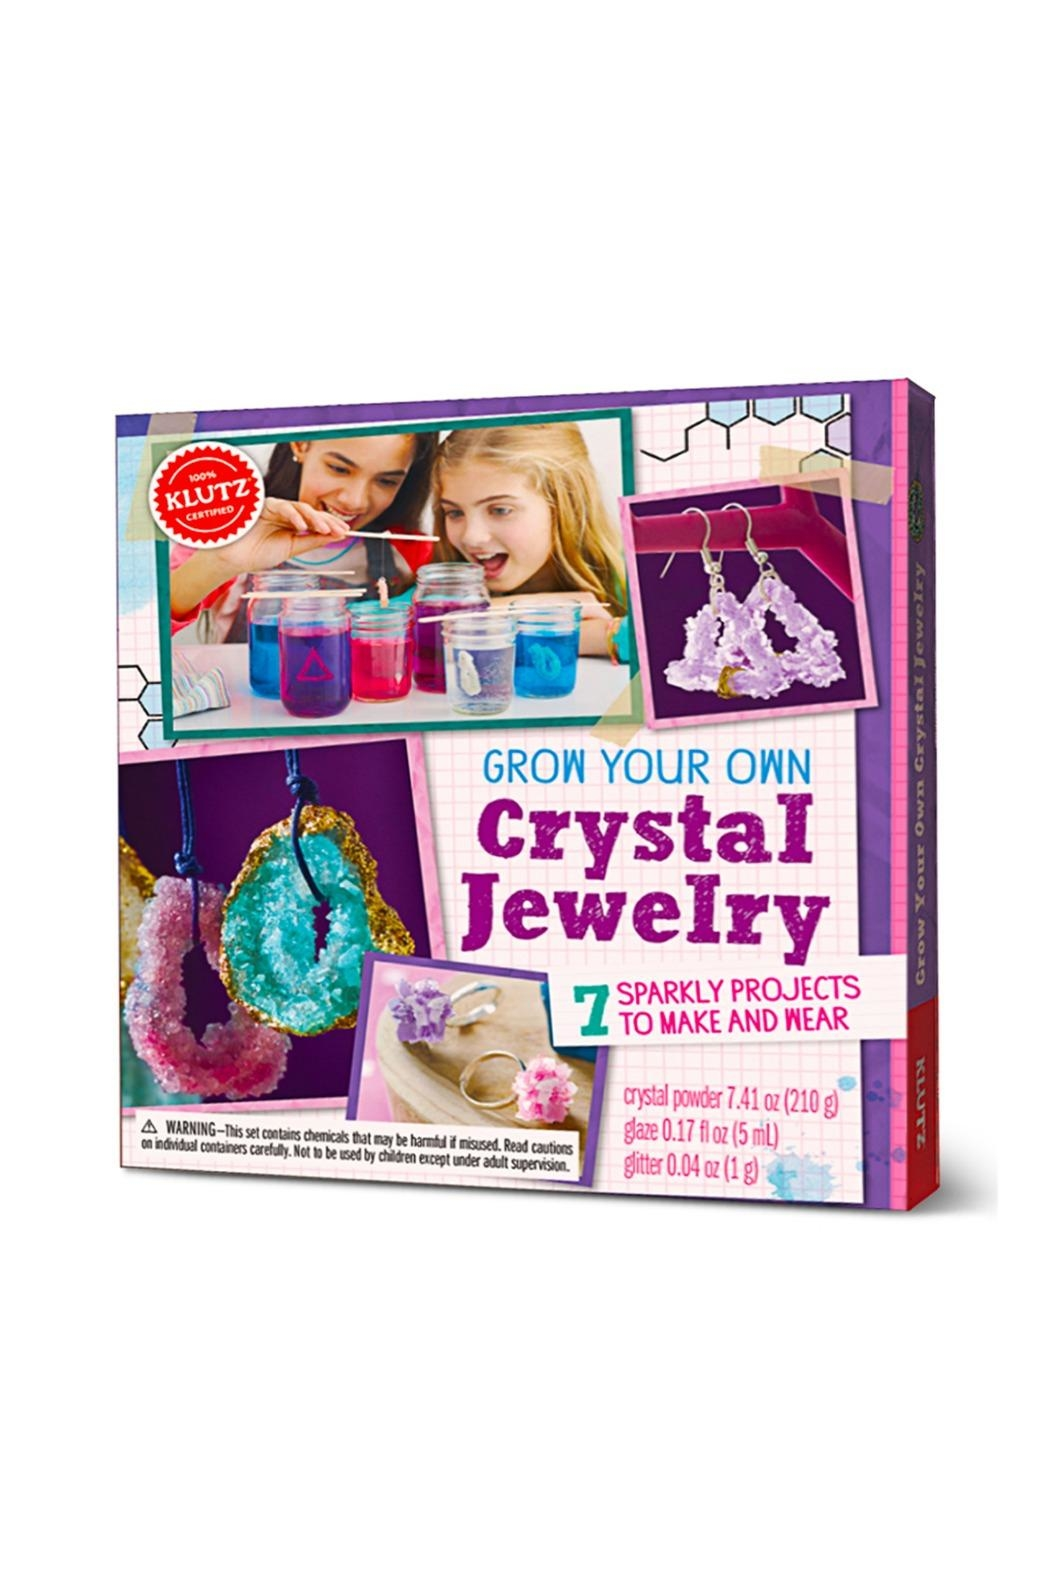 scholastic crystal growing kit instructions